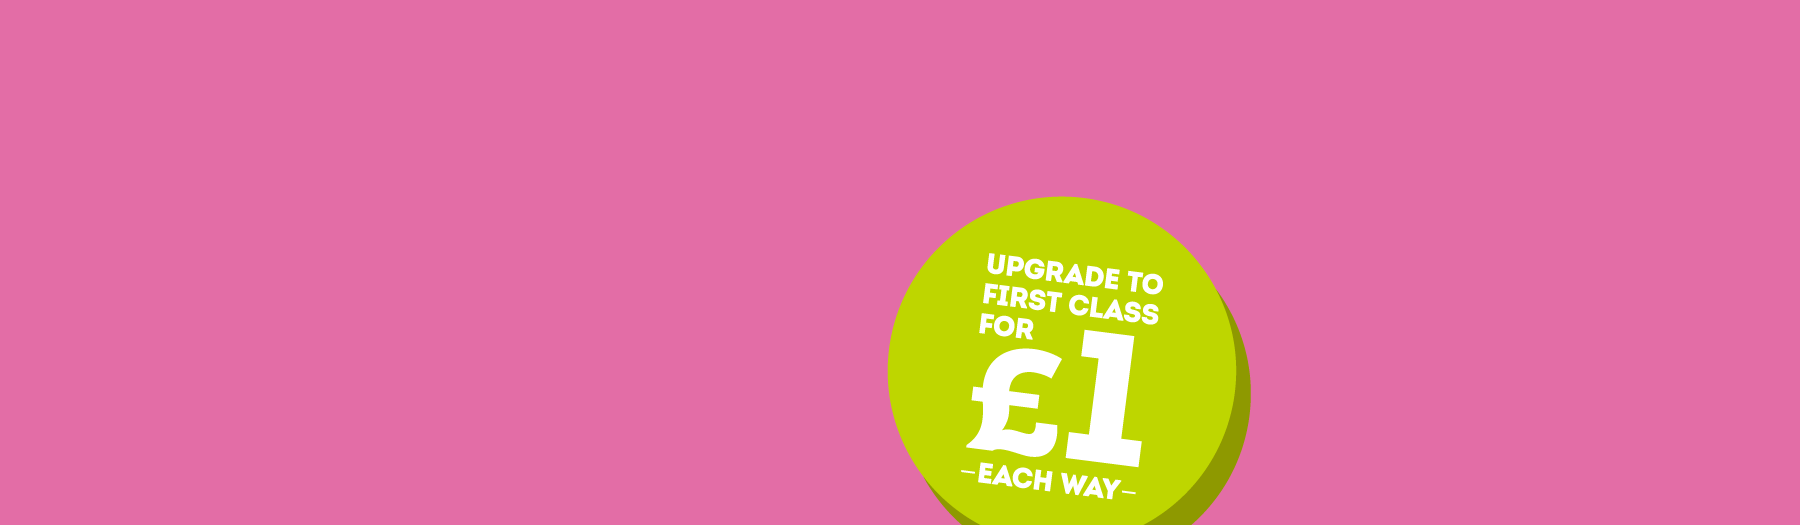 Upgrade to First Class for £1 each way